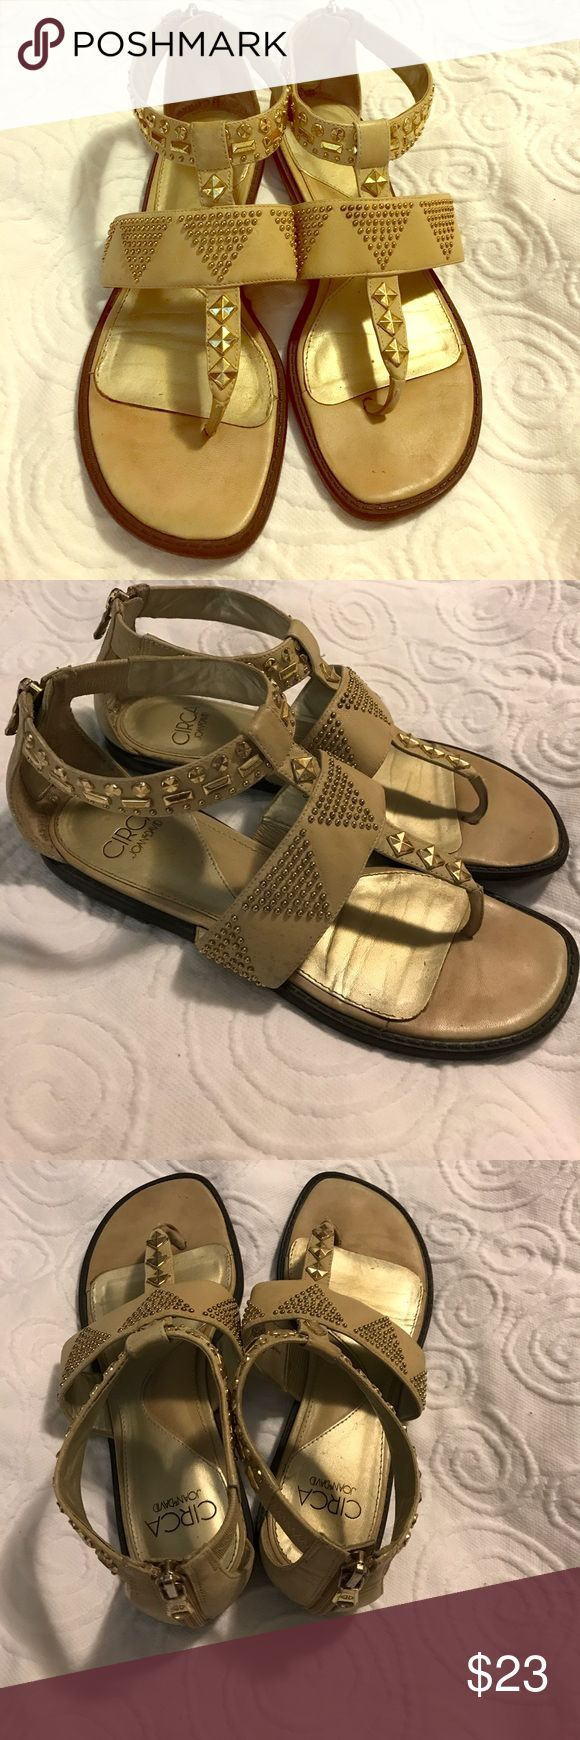 Circa Joan &David Zip Back Sandals Circa Joan &David Zip Back Sandals. Size 7. Gently Used. These beauties will be the ones you always want to wear❤️ circa joan & david Shoes Sandals